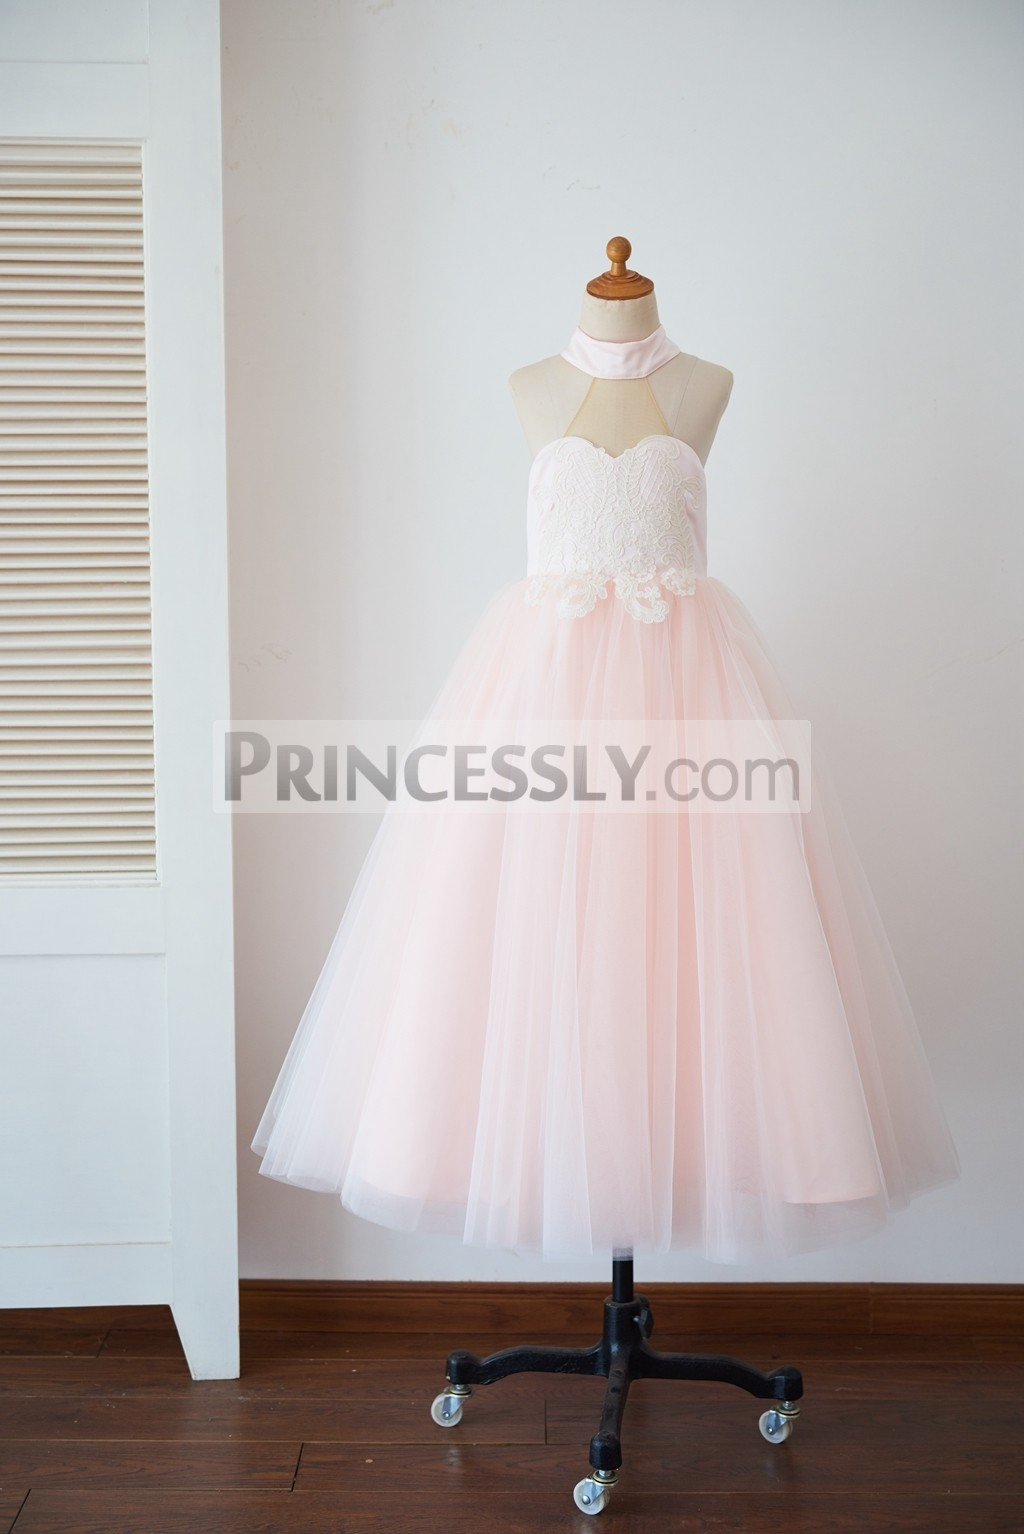 High neck inside sweetheart lining pink tulle flower girl gown